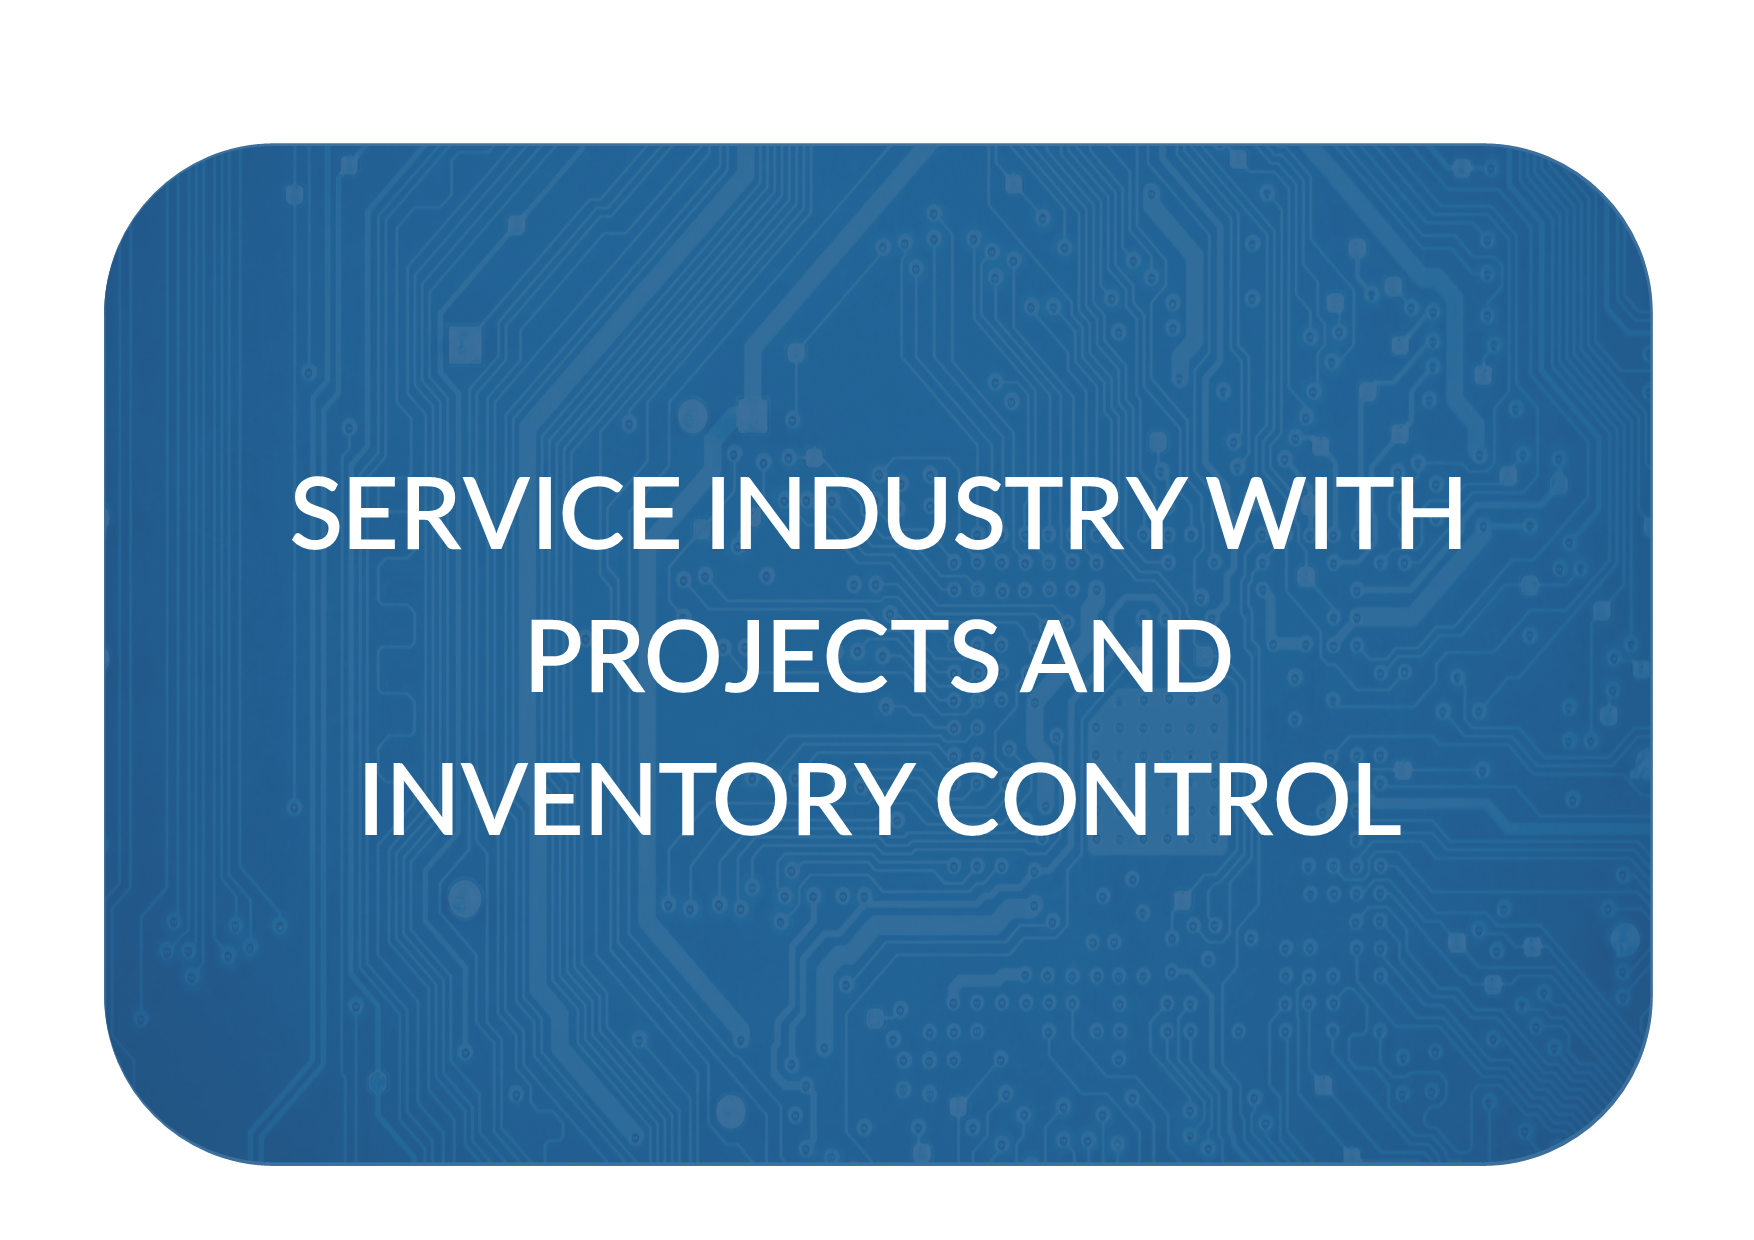 SERVICE INDUSTRY 1